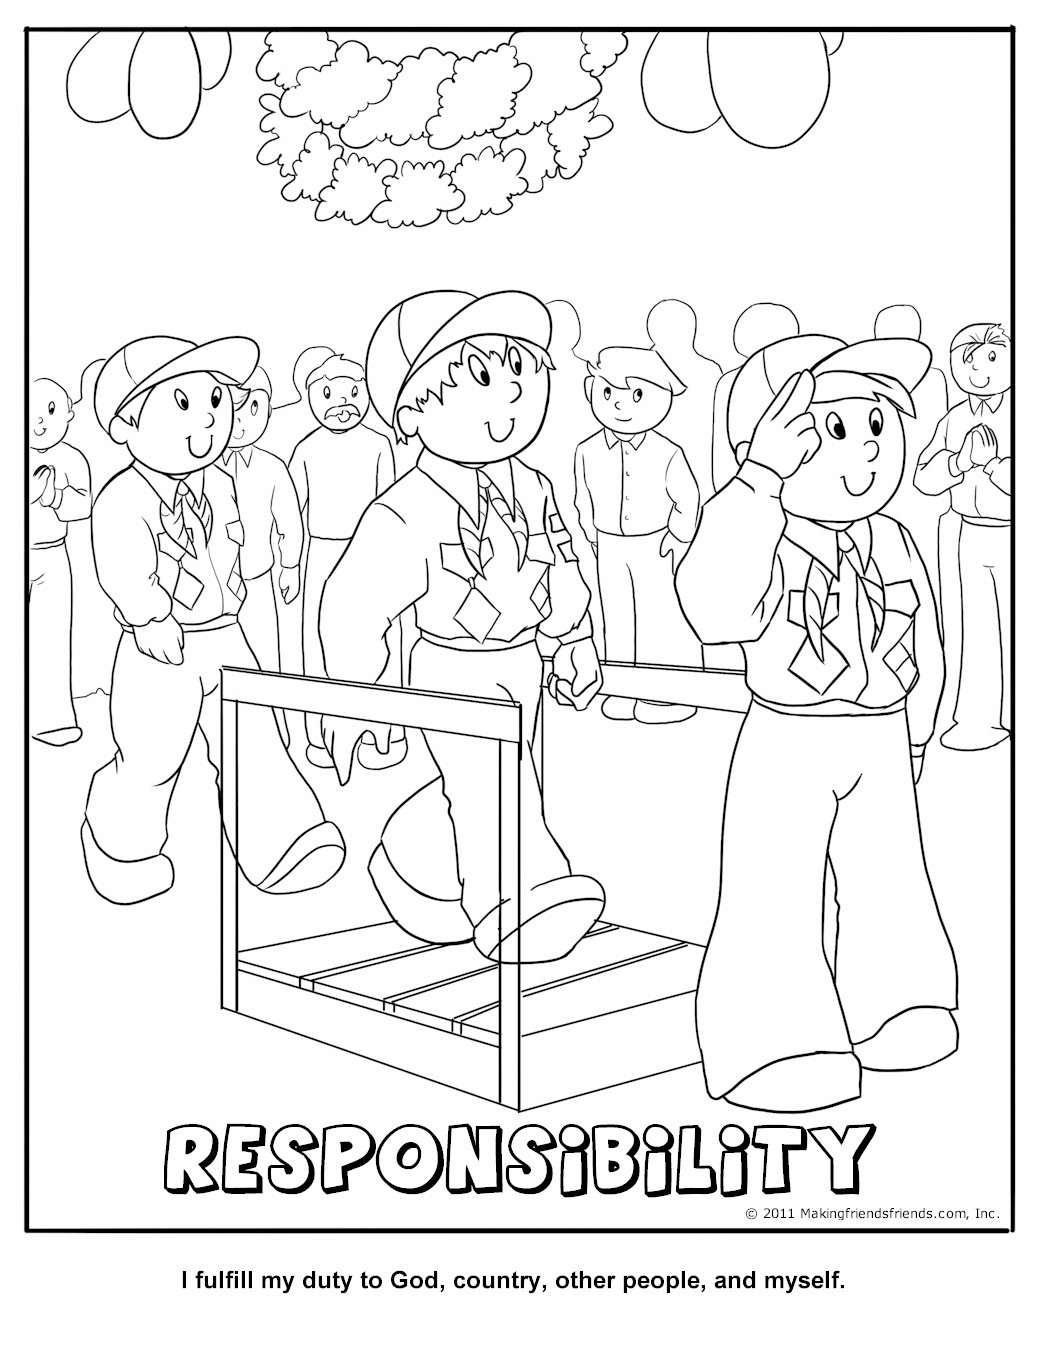 Cub Scout Responsibility Coloring Page Coloring Pages For Scouts